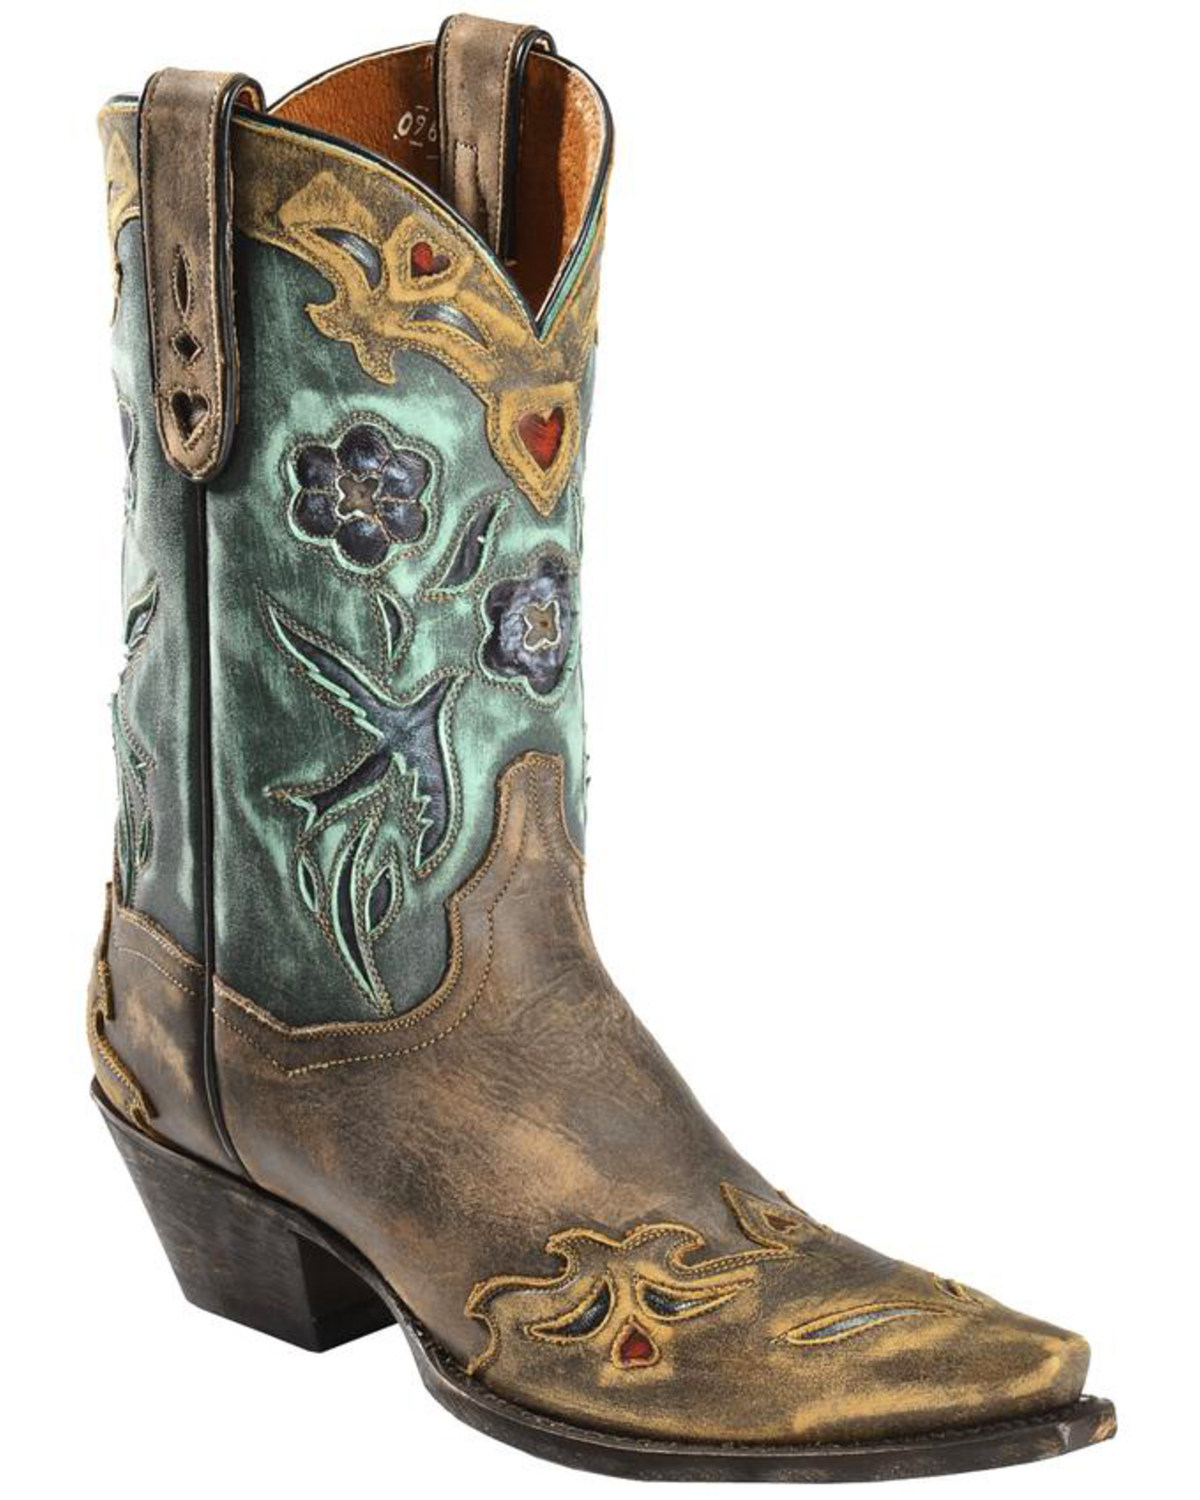 e29fe696f05 Dan Post Women's Vintage Blue Bird Snip Toe Western Boots